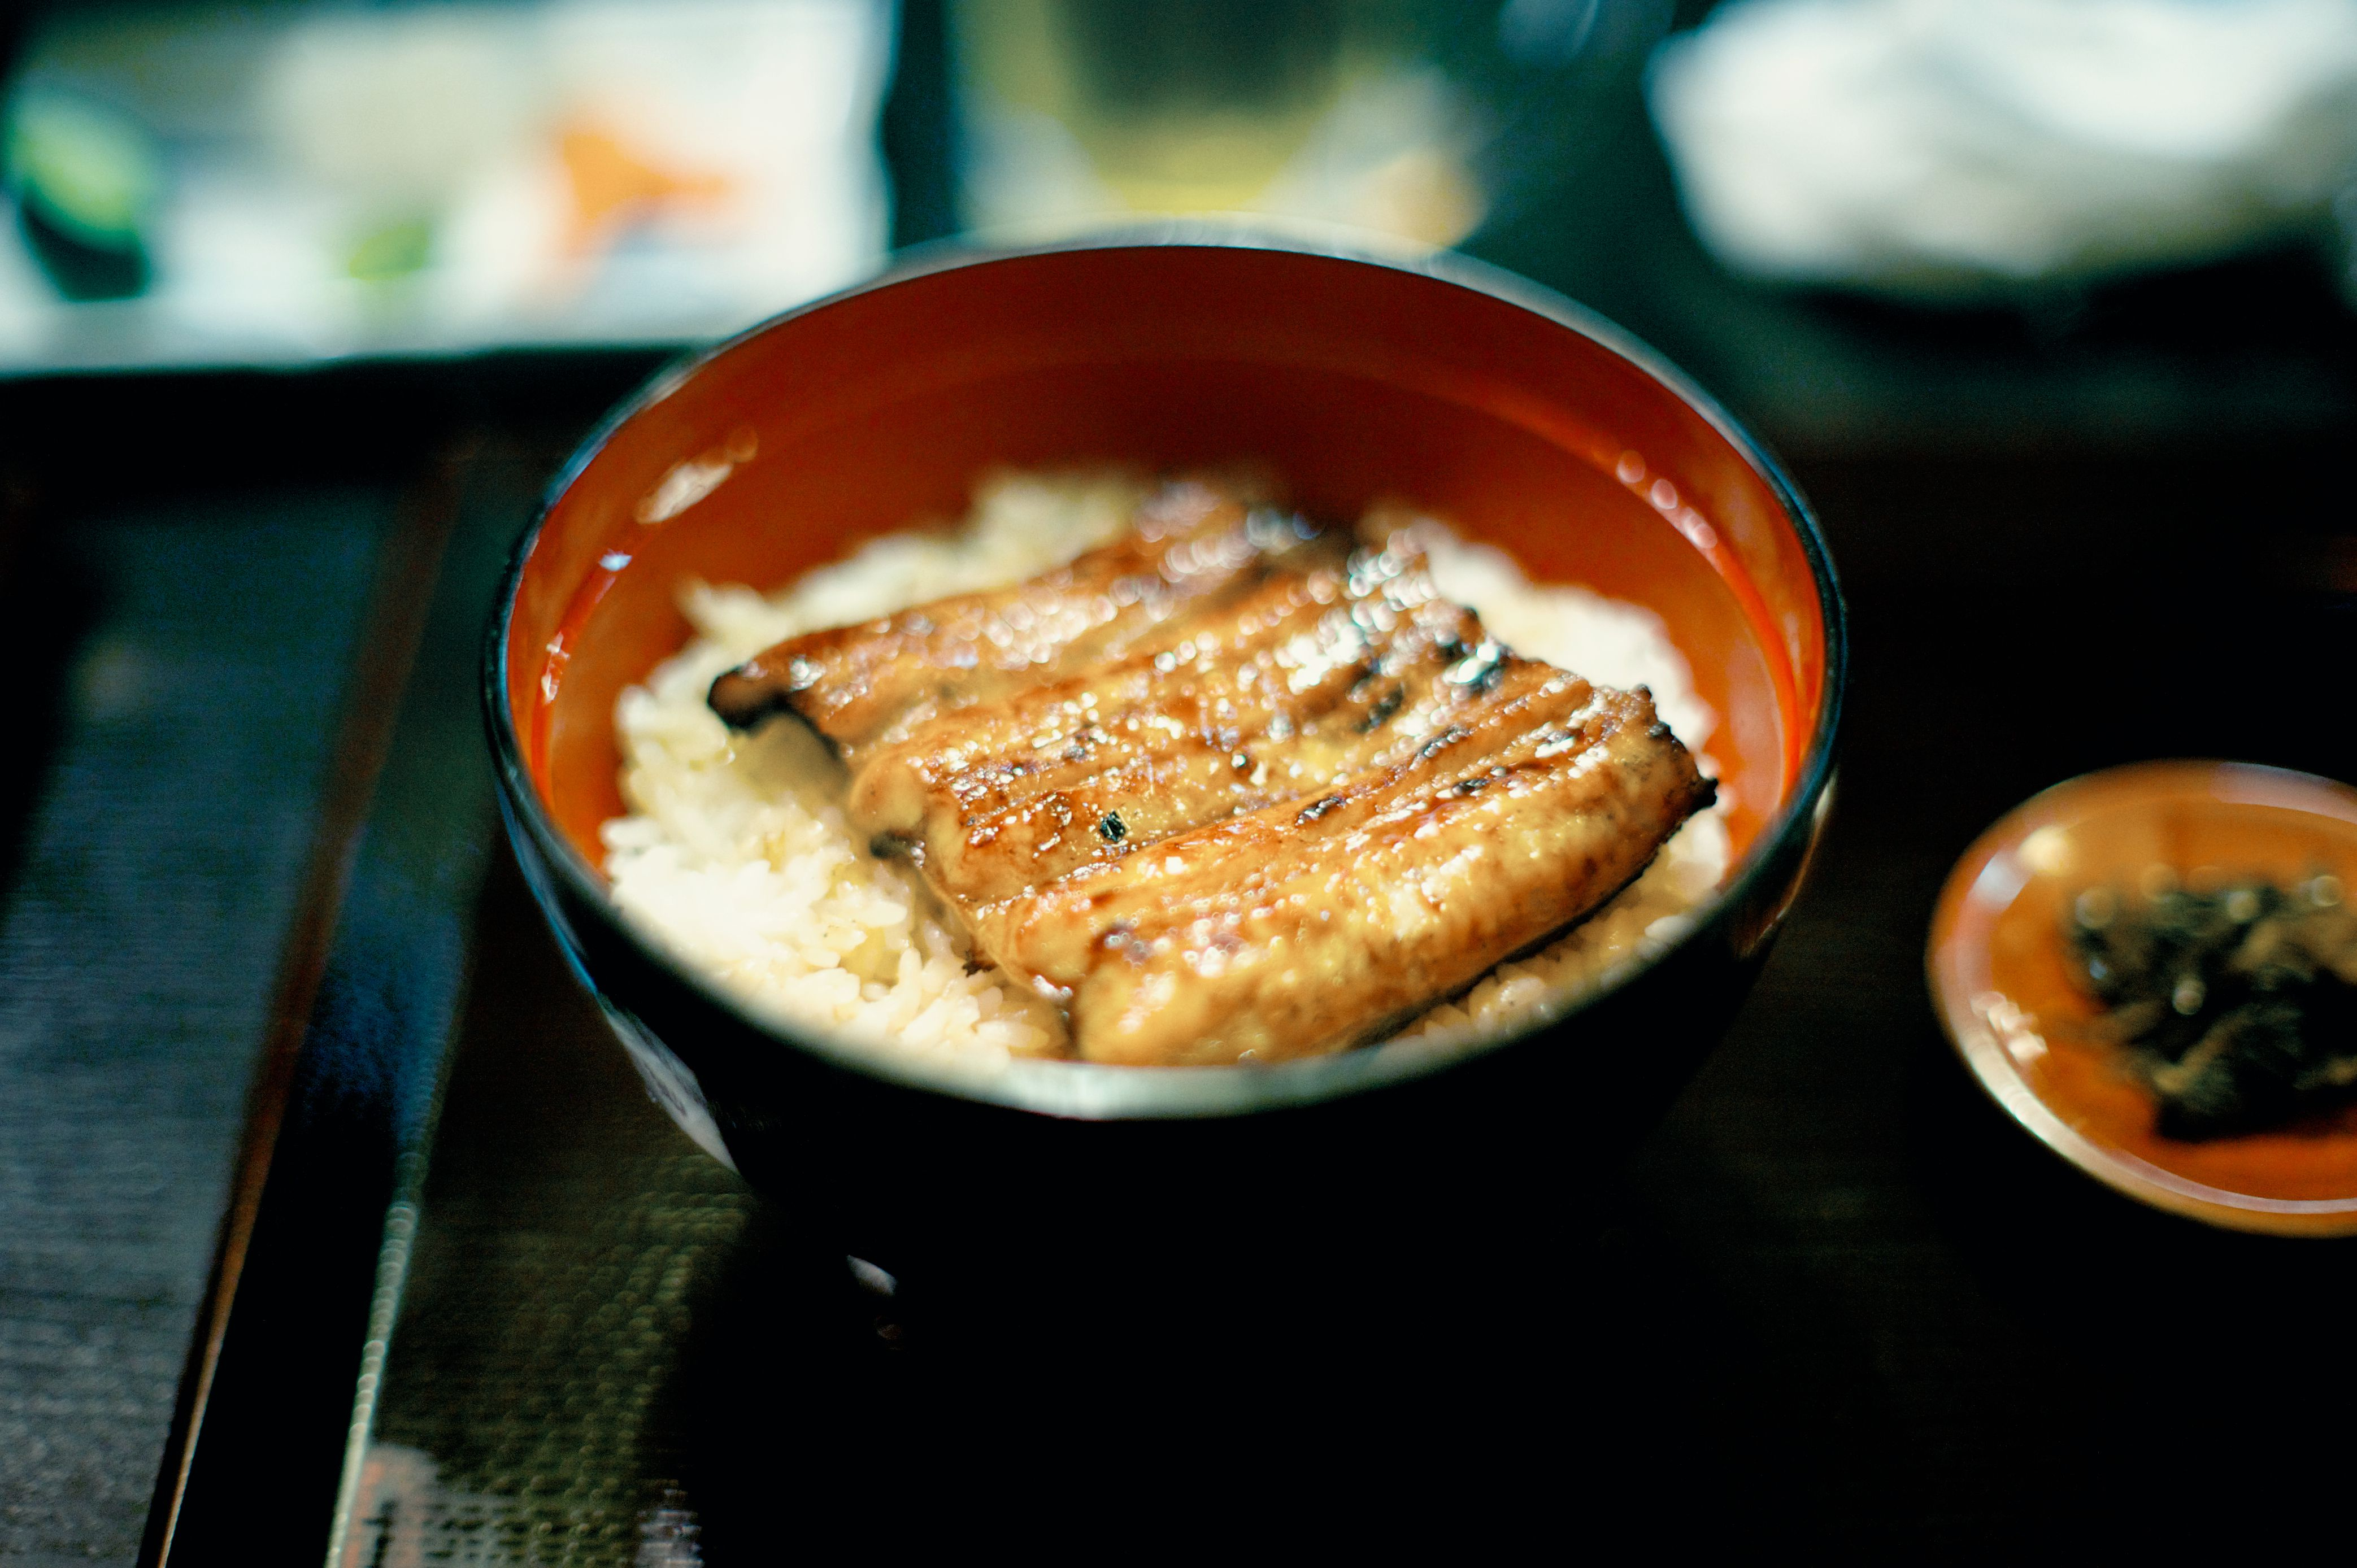 7 easy japanese recipes to try at home easy japanese broiled unagi eel with rice recipe forumfinder Gallery